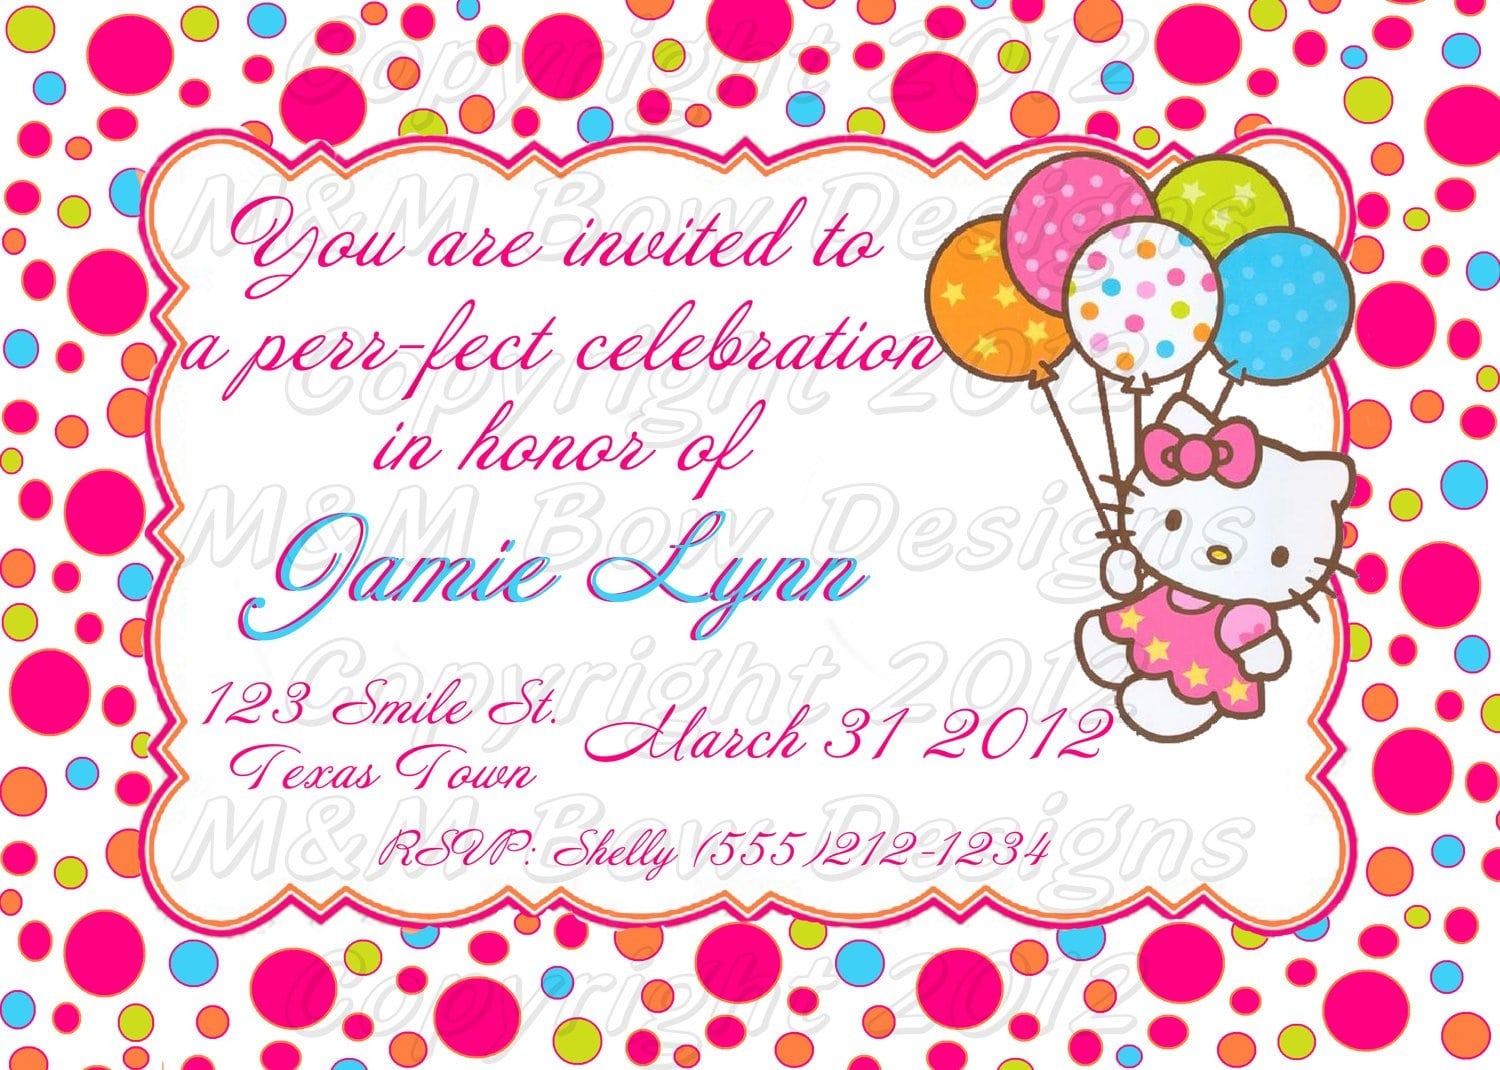 40th birthday ideas birthday invitation templates hello kitty hello kitty invitation birthday party birthday party invitations